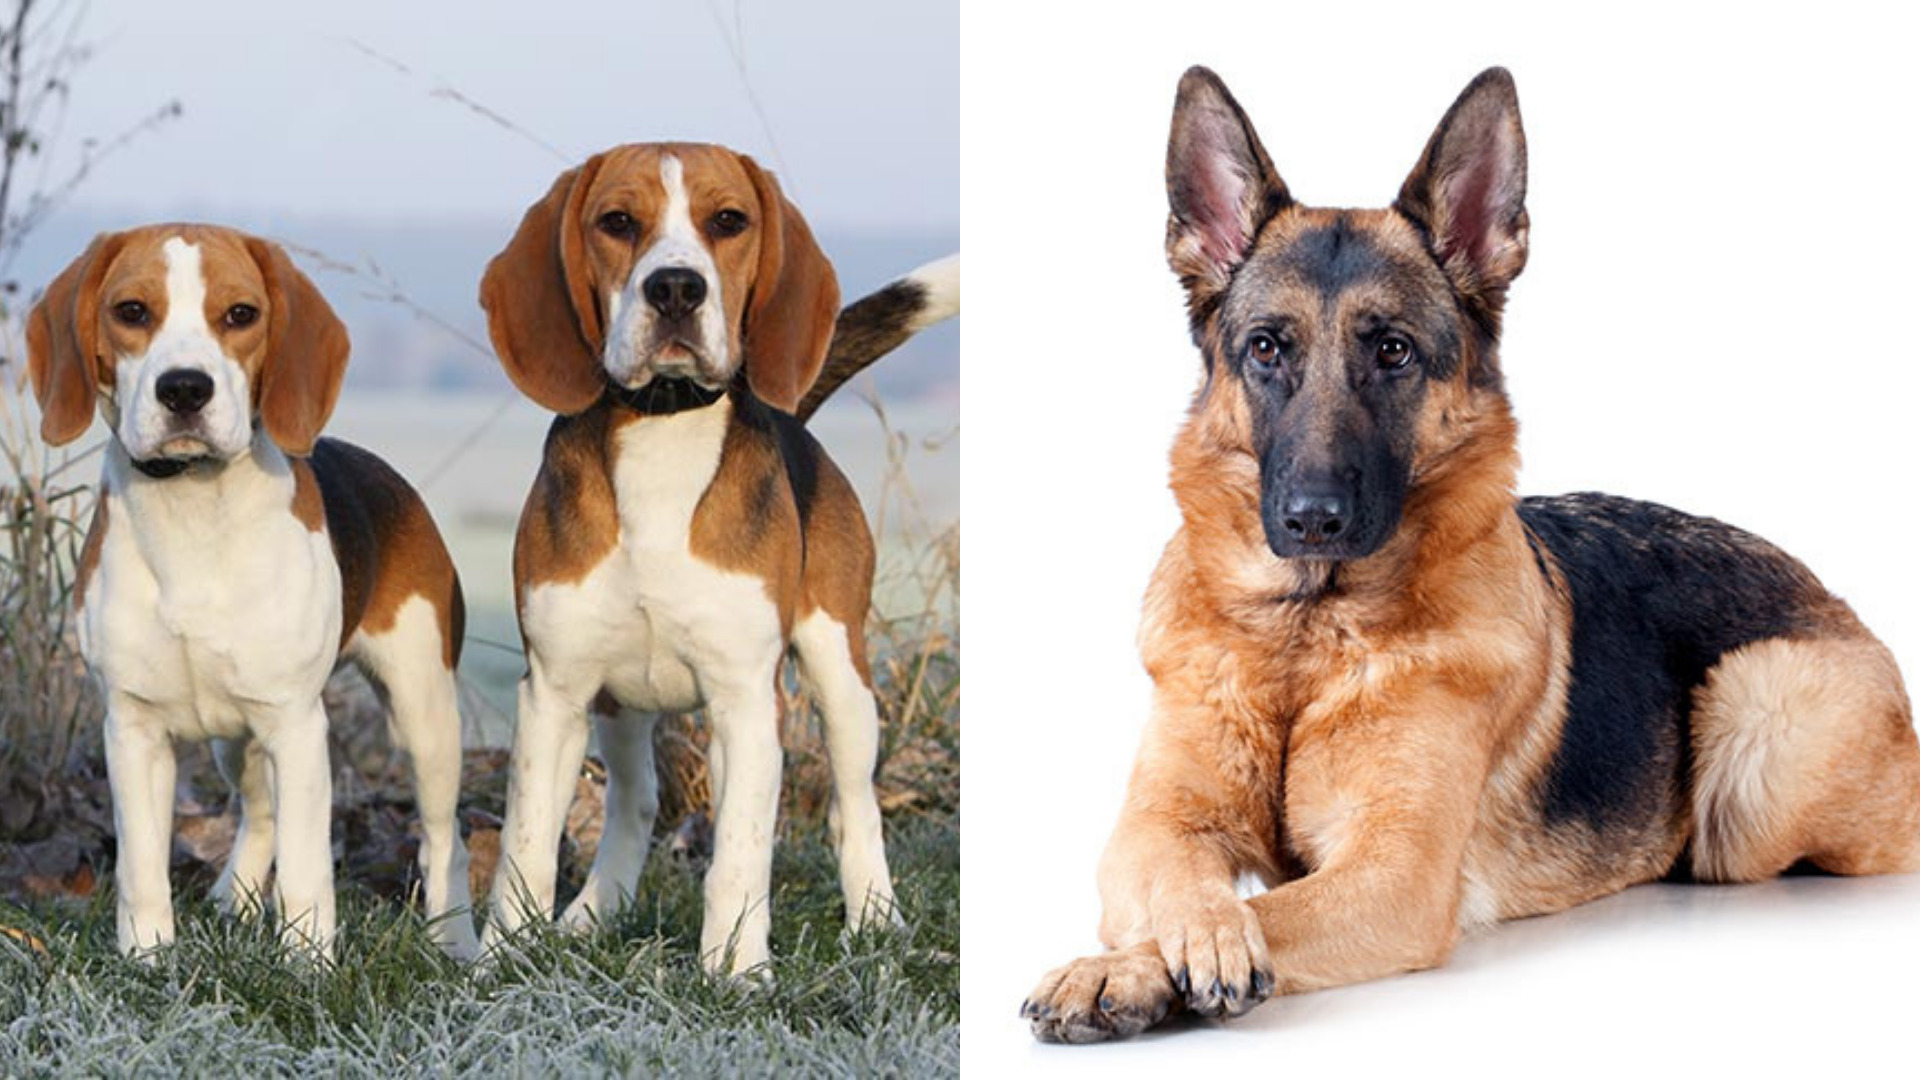 Dog breeds – 10 dog breeds that you'd like to have as a pet